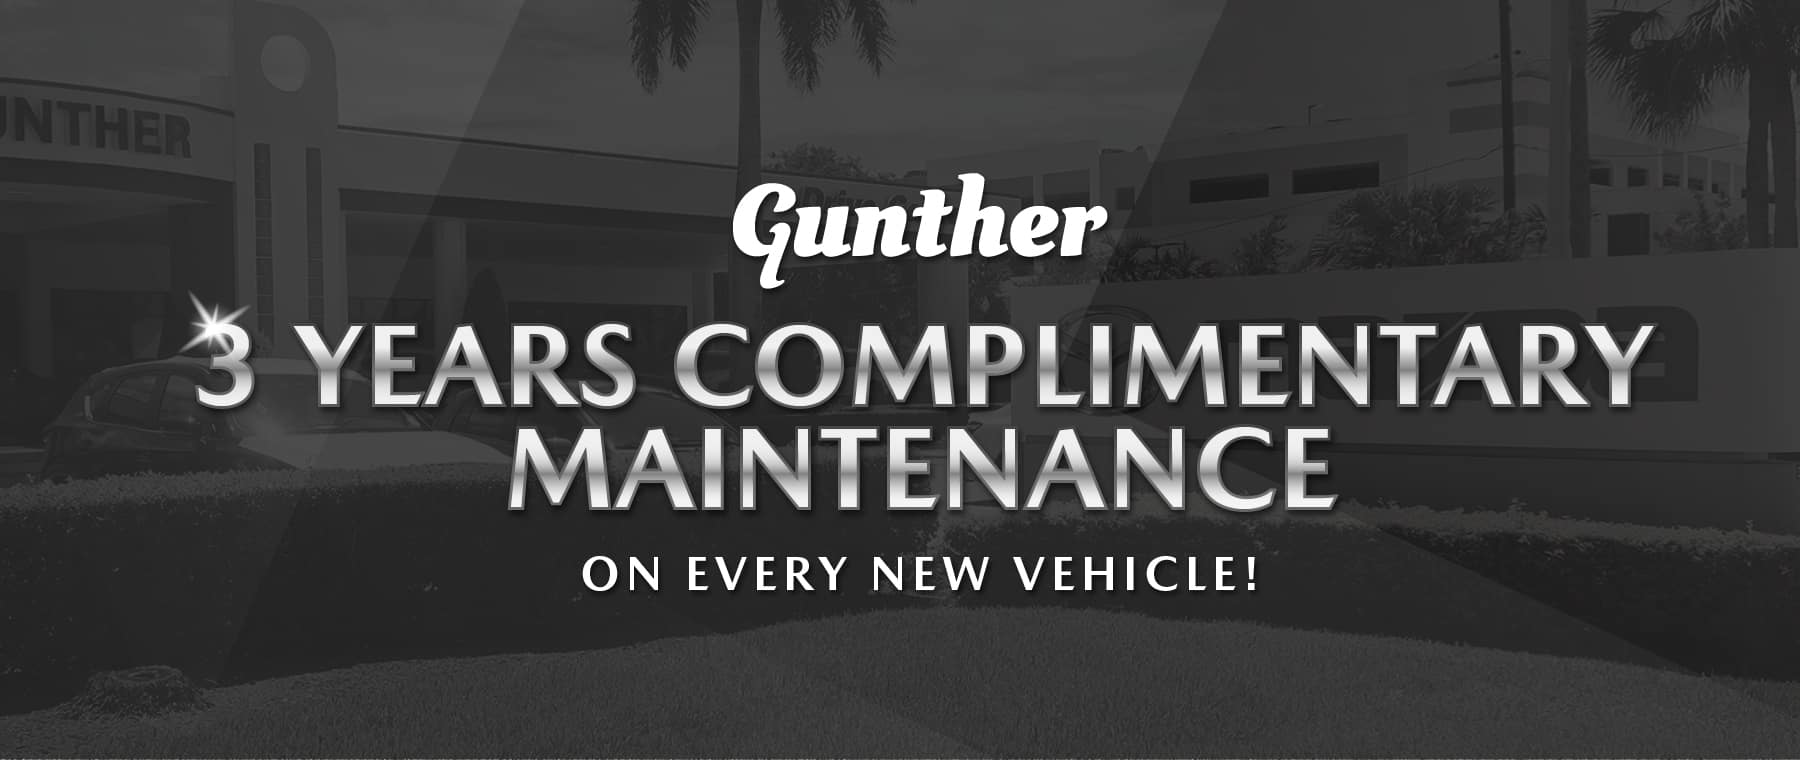 Gunther 3 years complimentary maintenance on every new vehicle!